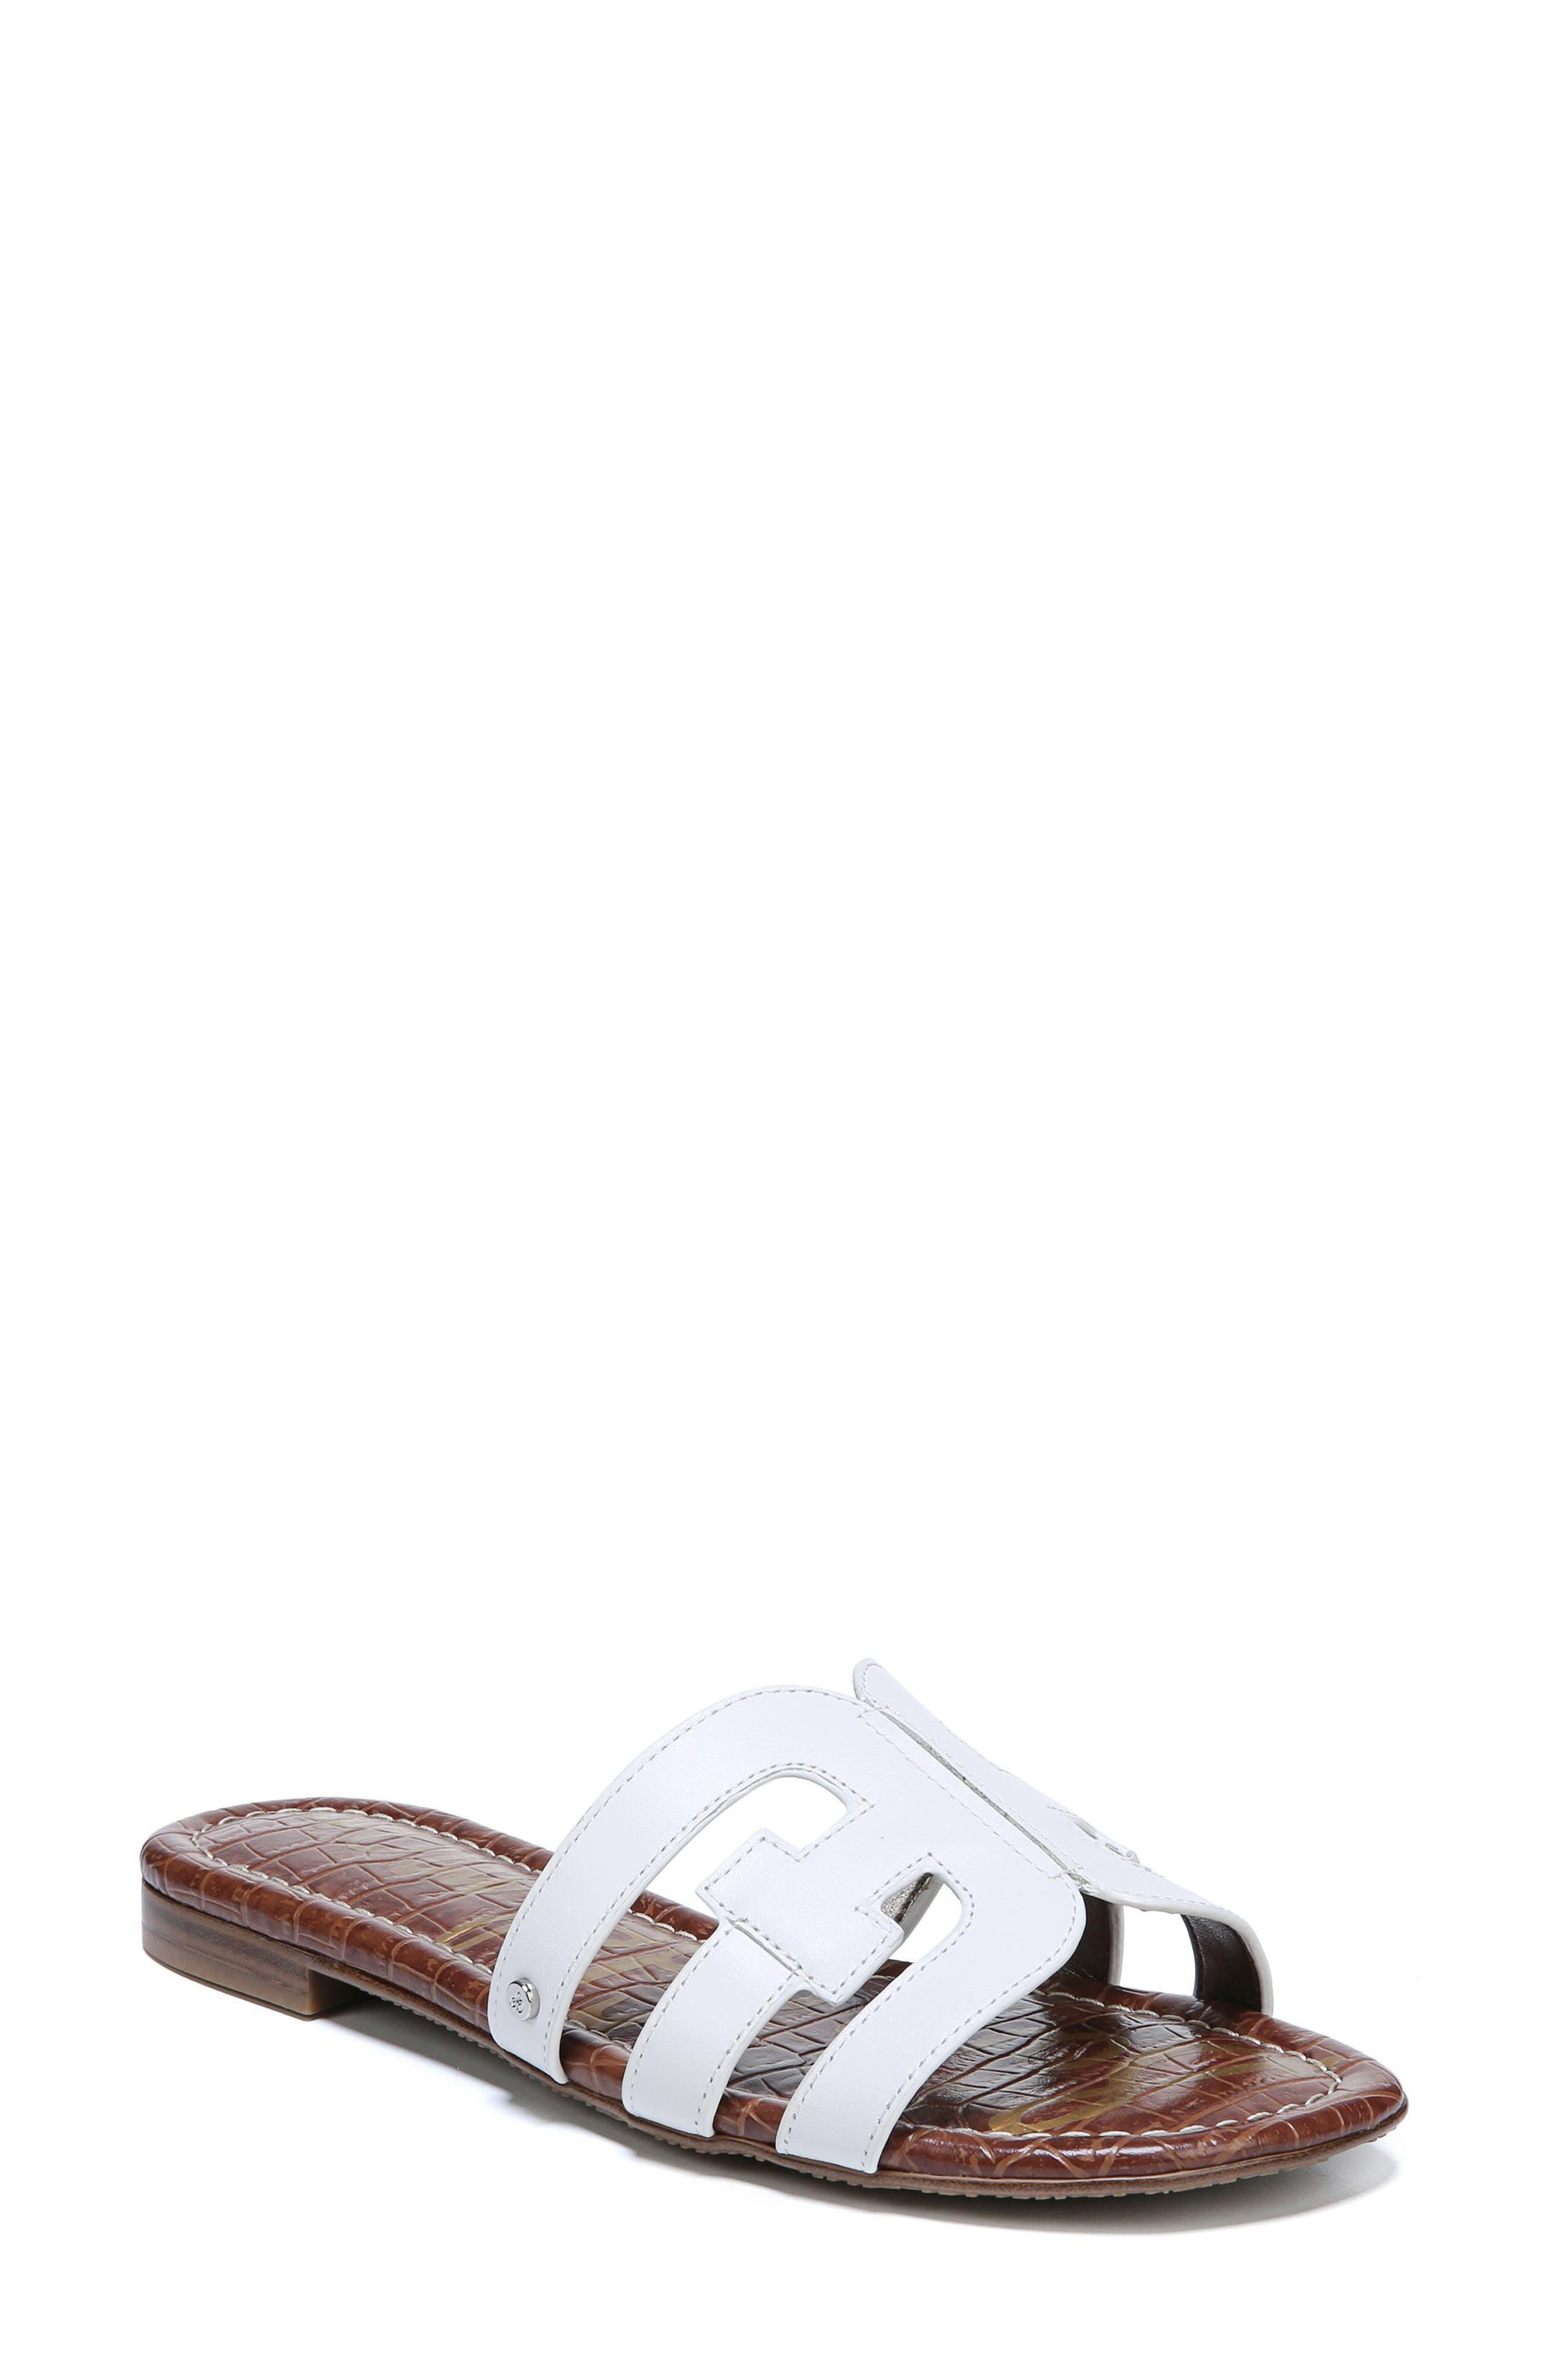 Bay Cutout Slide Sandal,                         Main,                         color, Bright White Leather